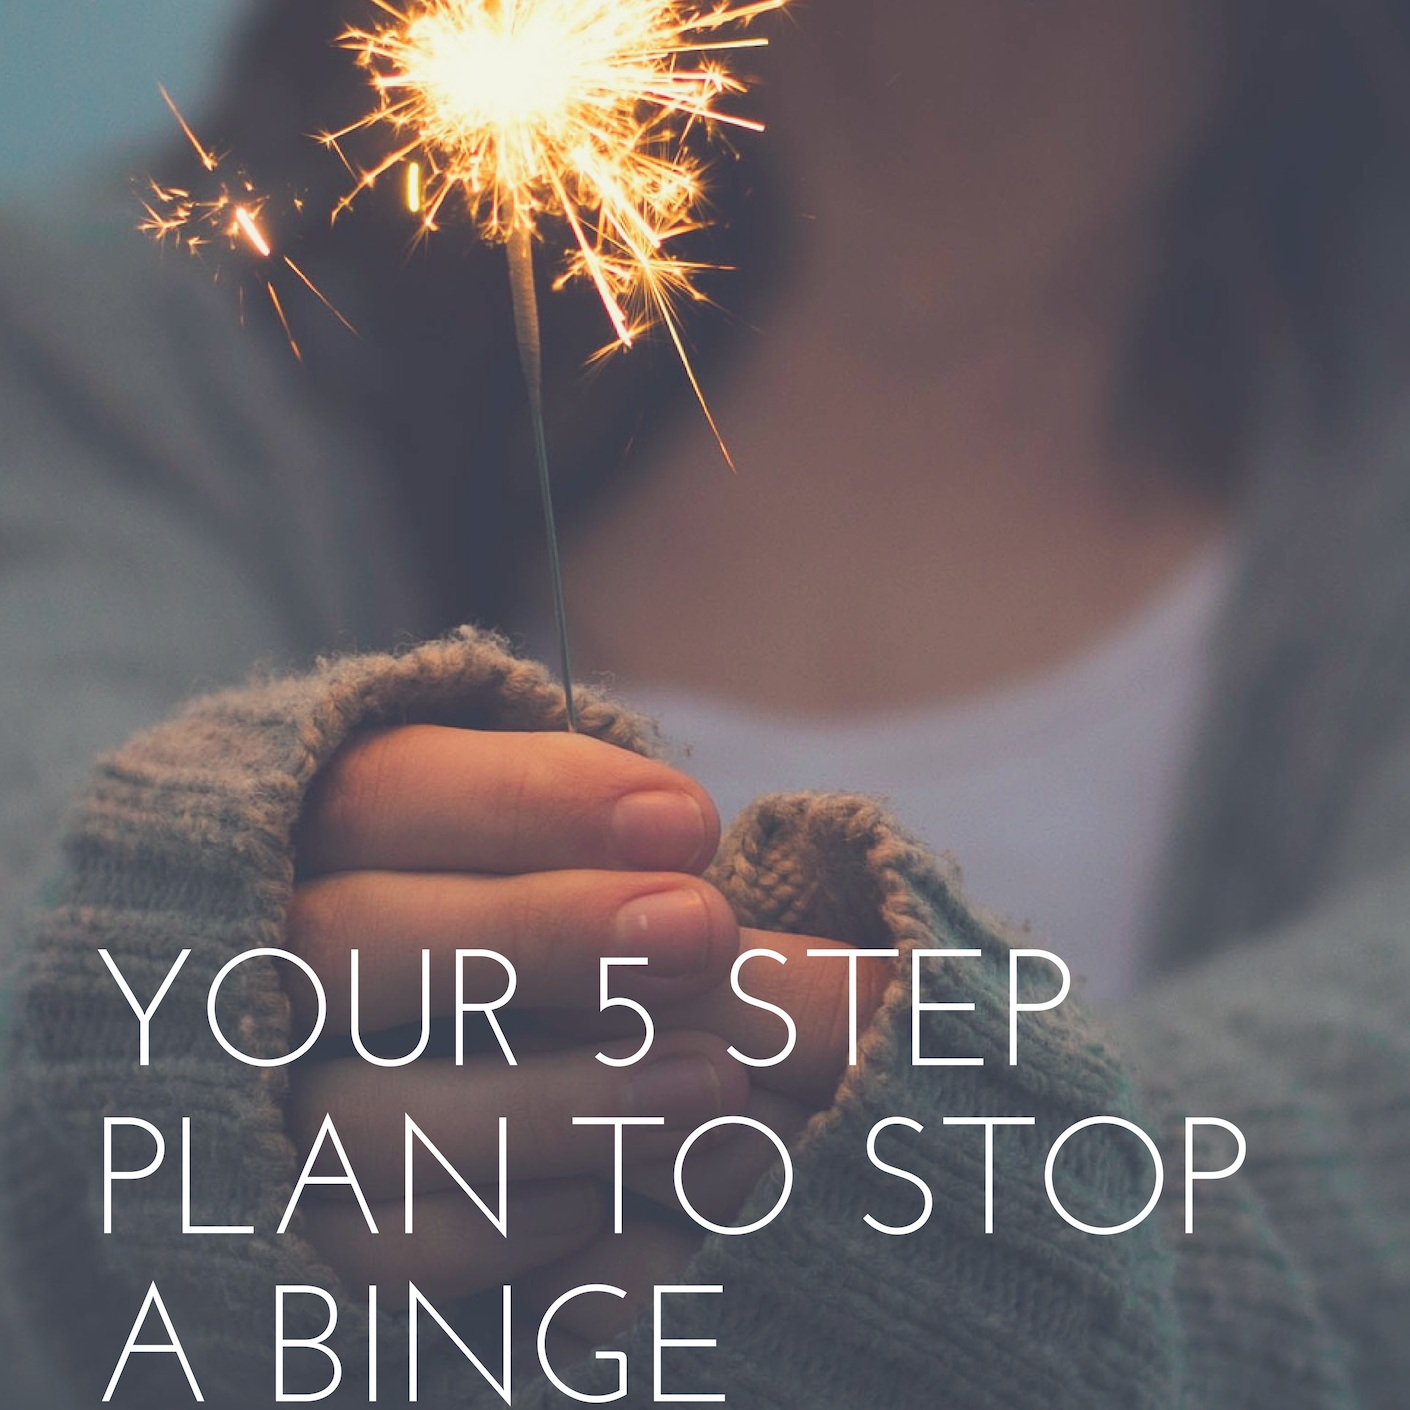 Your 5 Step Plan to Stop A Binge - Five simple steps to feeling great and regaining control on one of 'those' days.